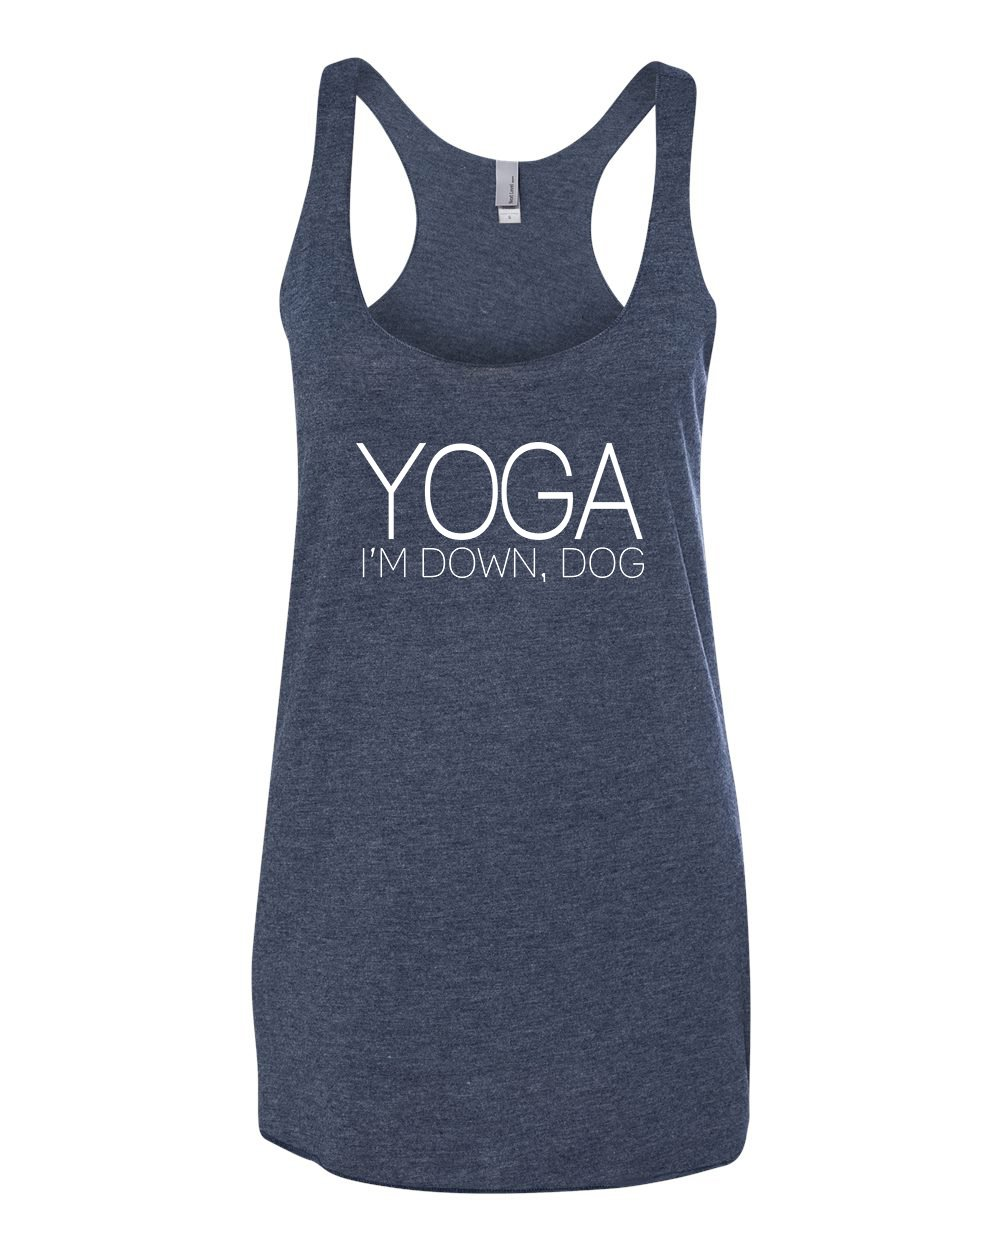 Panoware Women's Funny Workout Tank Top   Yoga I'm Down Dog, Navy Blue, X-Large